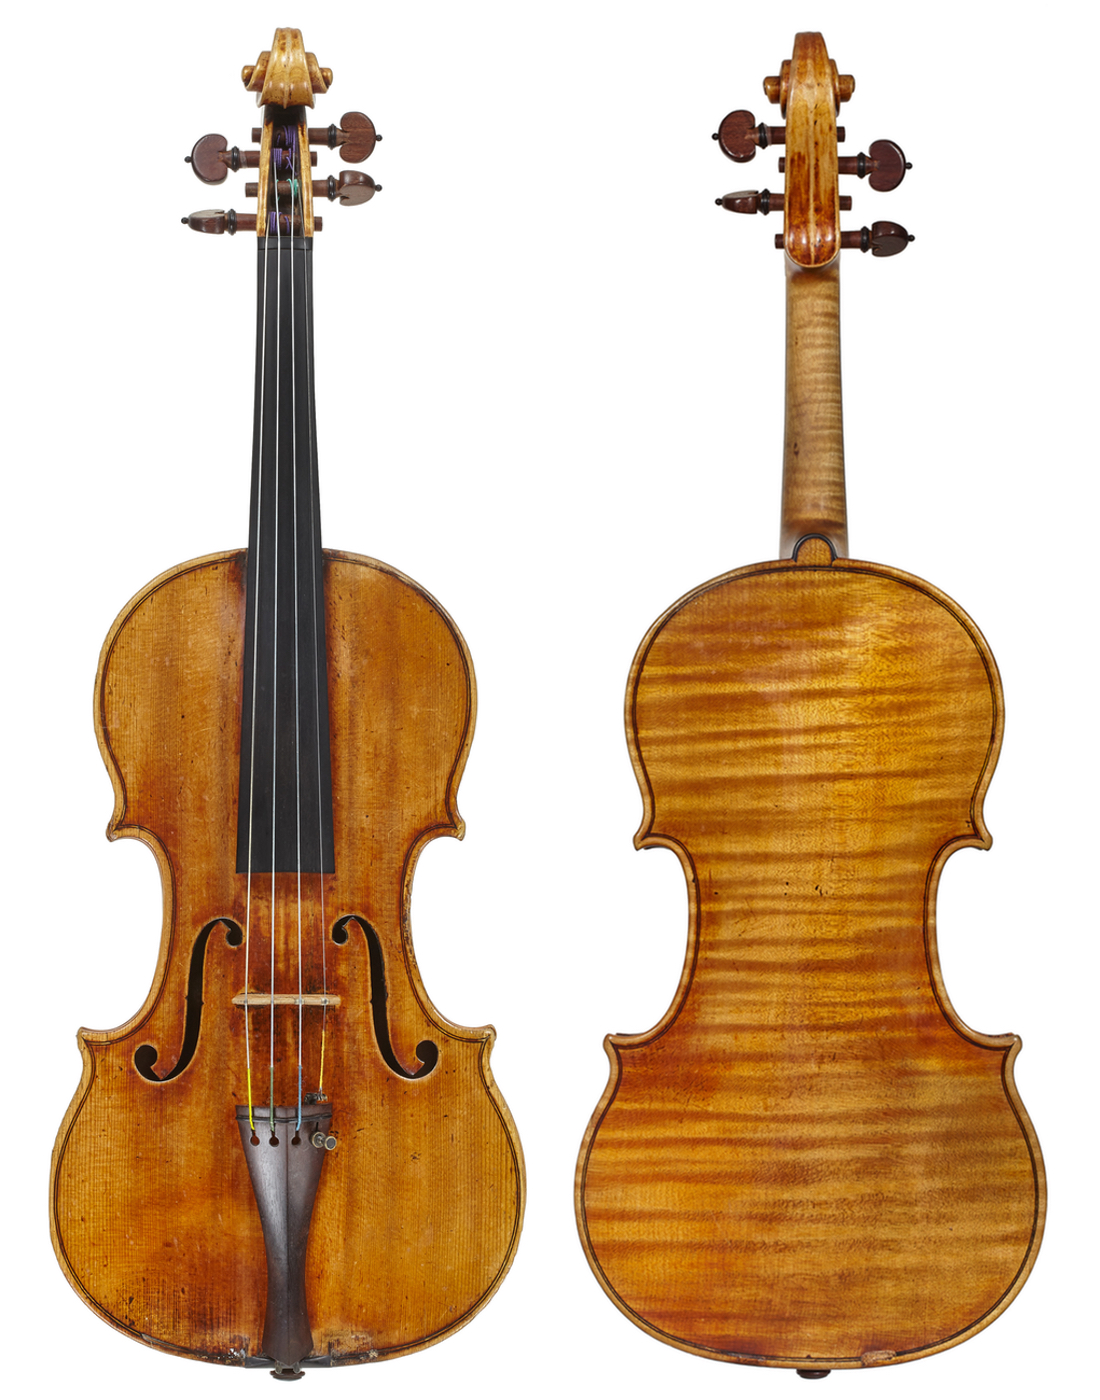 Sancy Stradivari of 1713